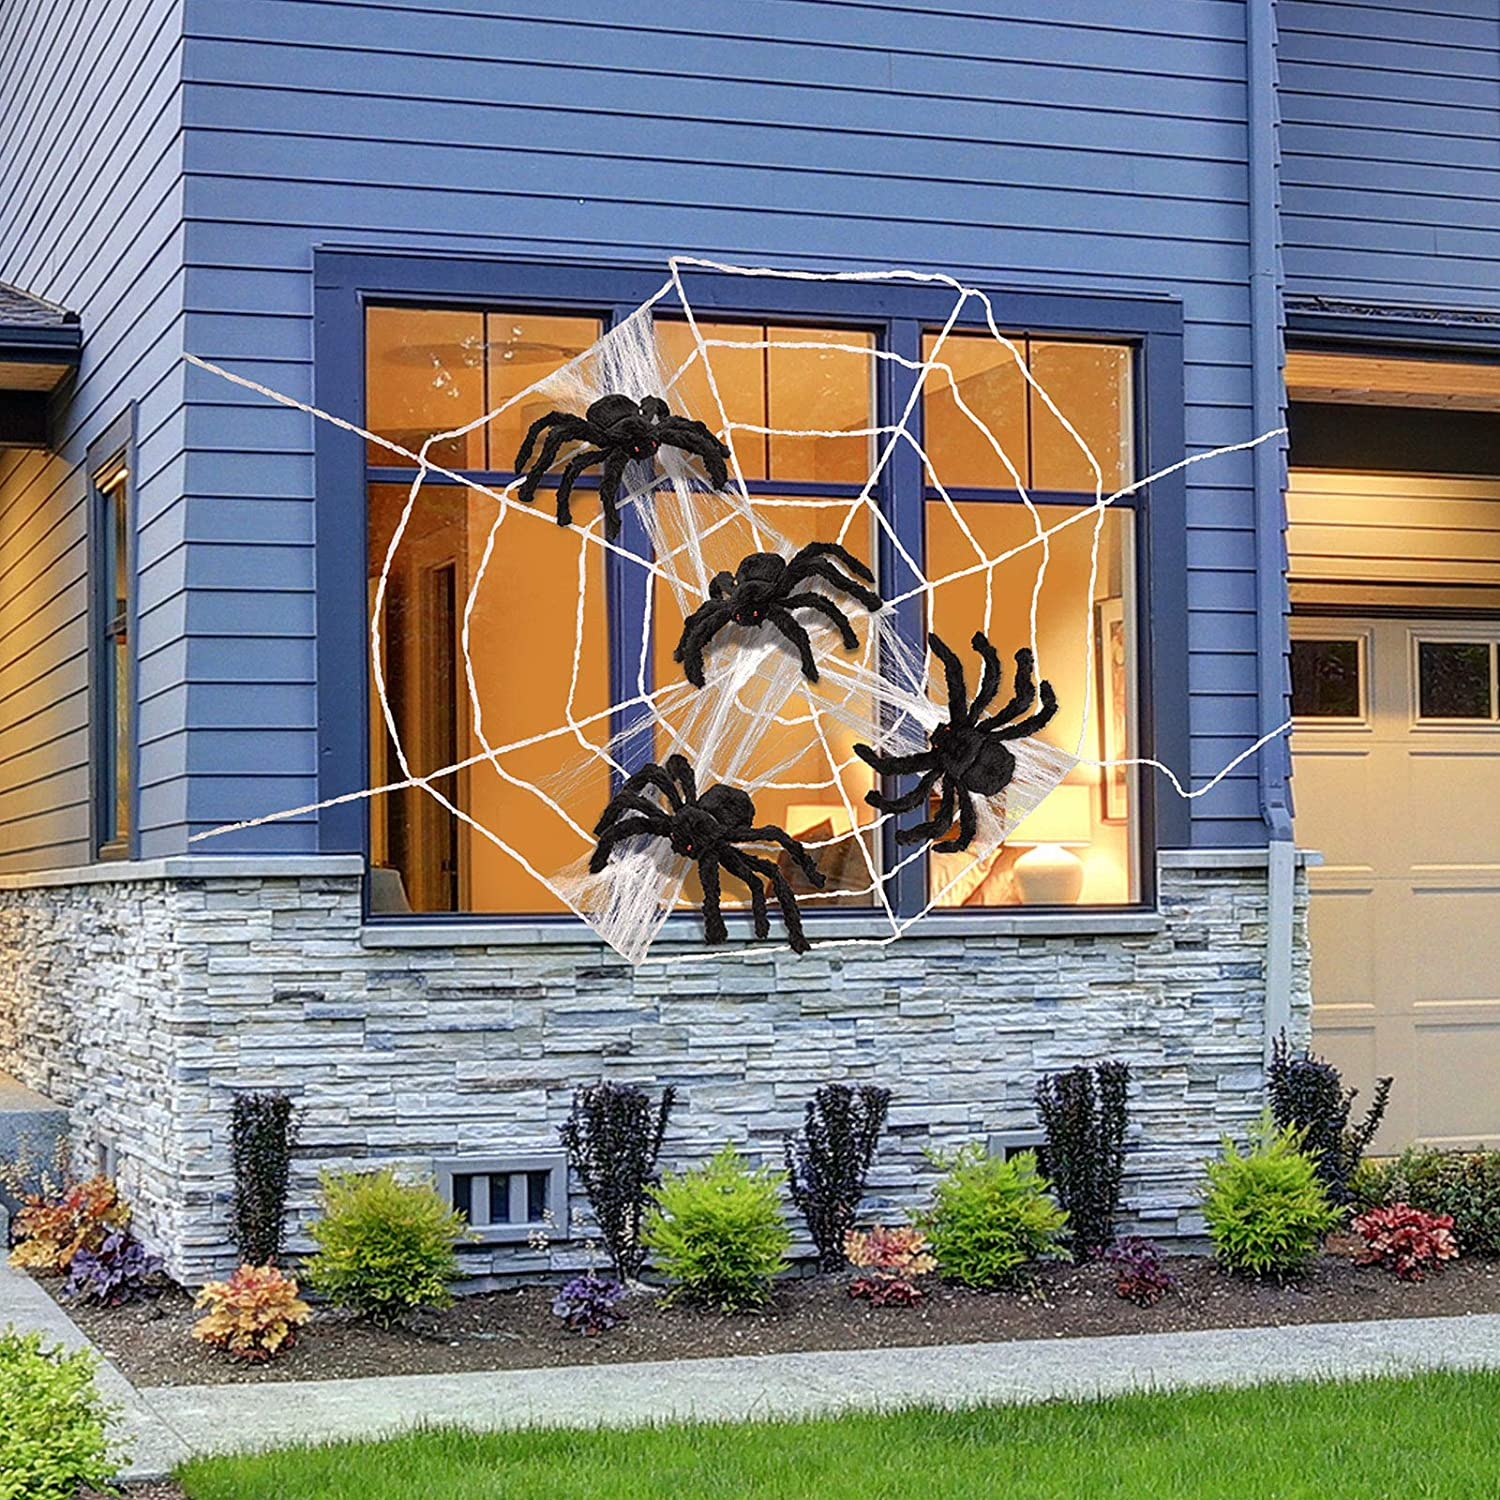 4 Pieces Halloween Fake Spiders with Giant Spider Web Stretch Cobweb Decoration for Halloween Party Outdoor Garden Yard Haunted House Decor Costume Props